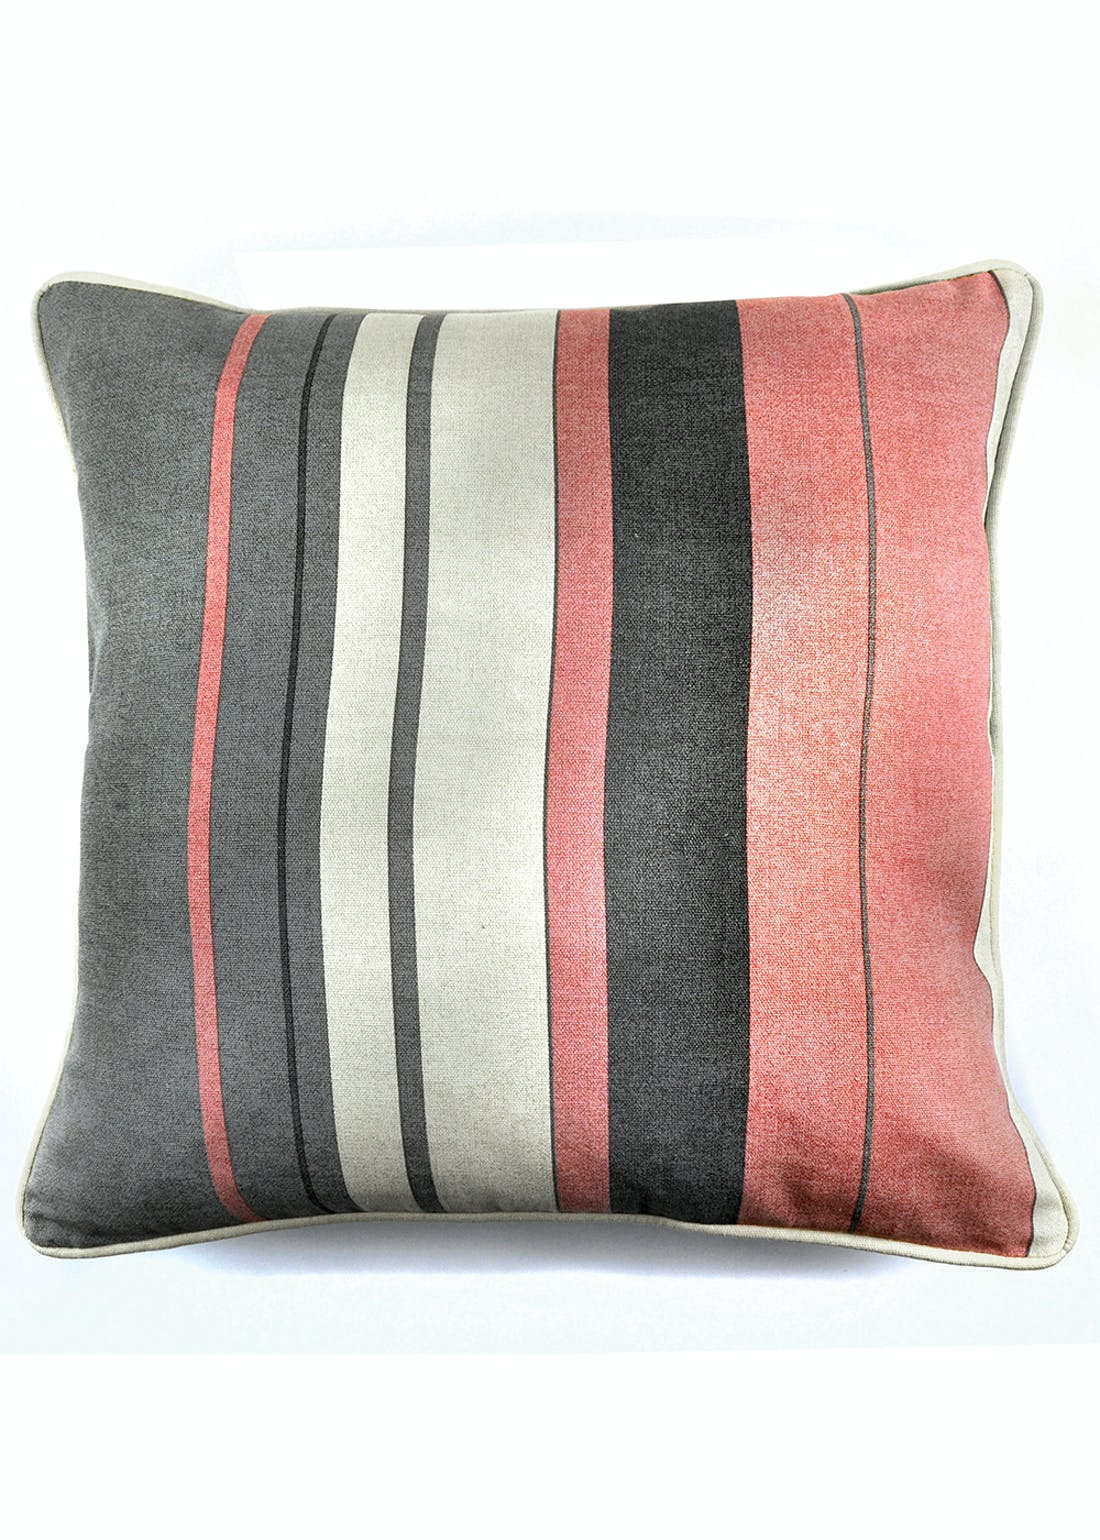 Fusion Whitworth Cushion (43cm x 43cm)